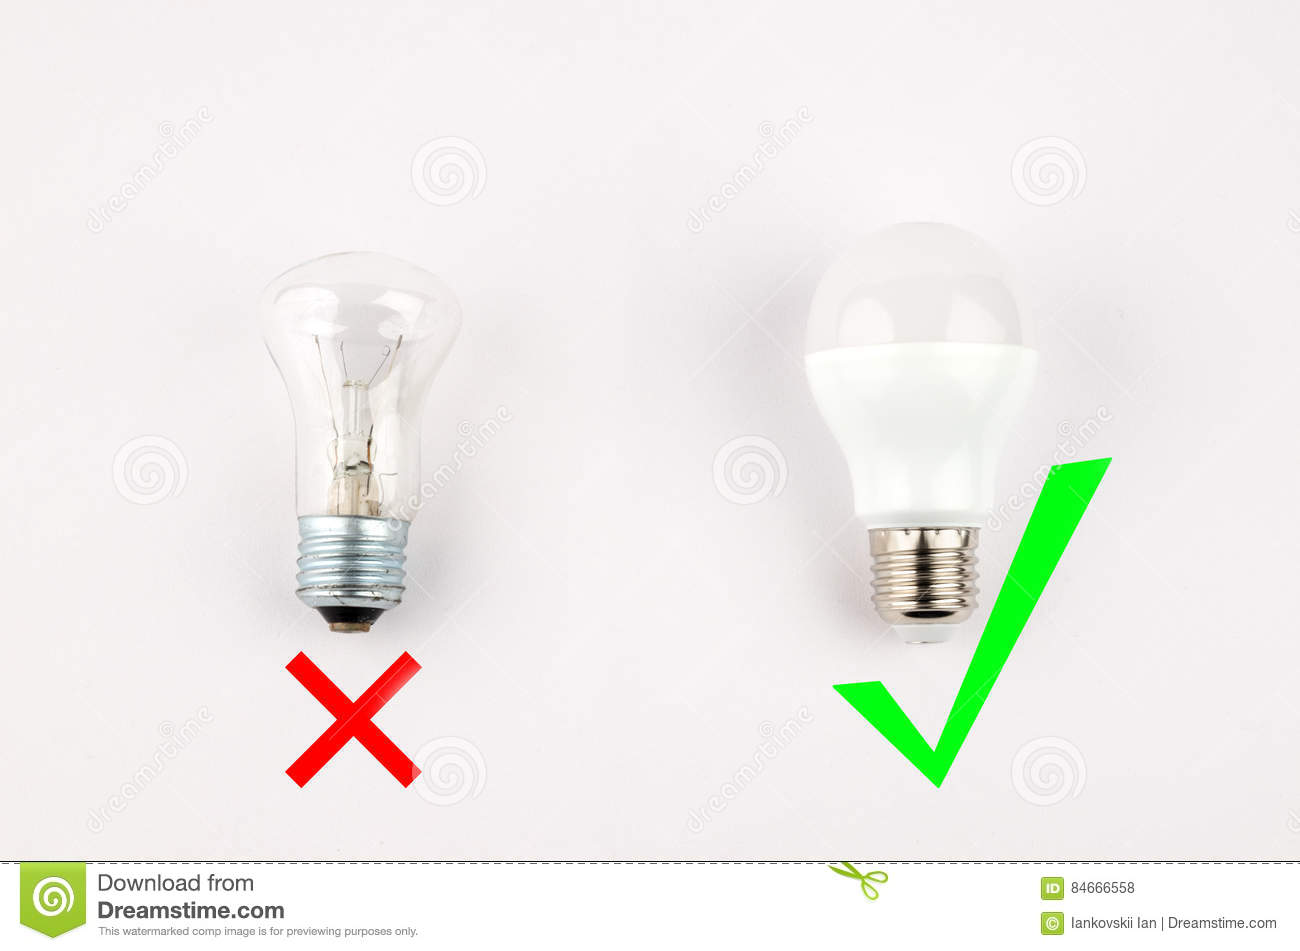 Several Led Energy Saving Light Bulbs Over The Old Incandescent Use Of Economical And